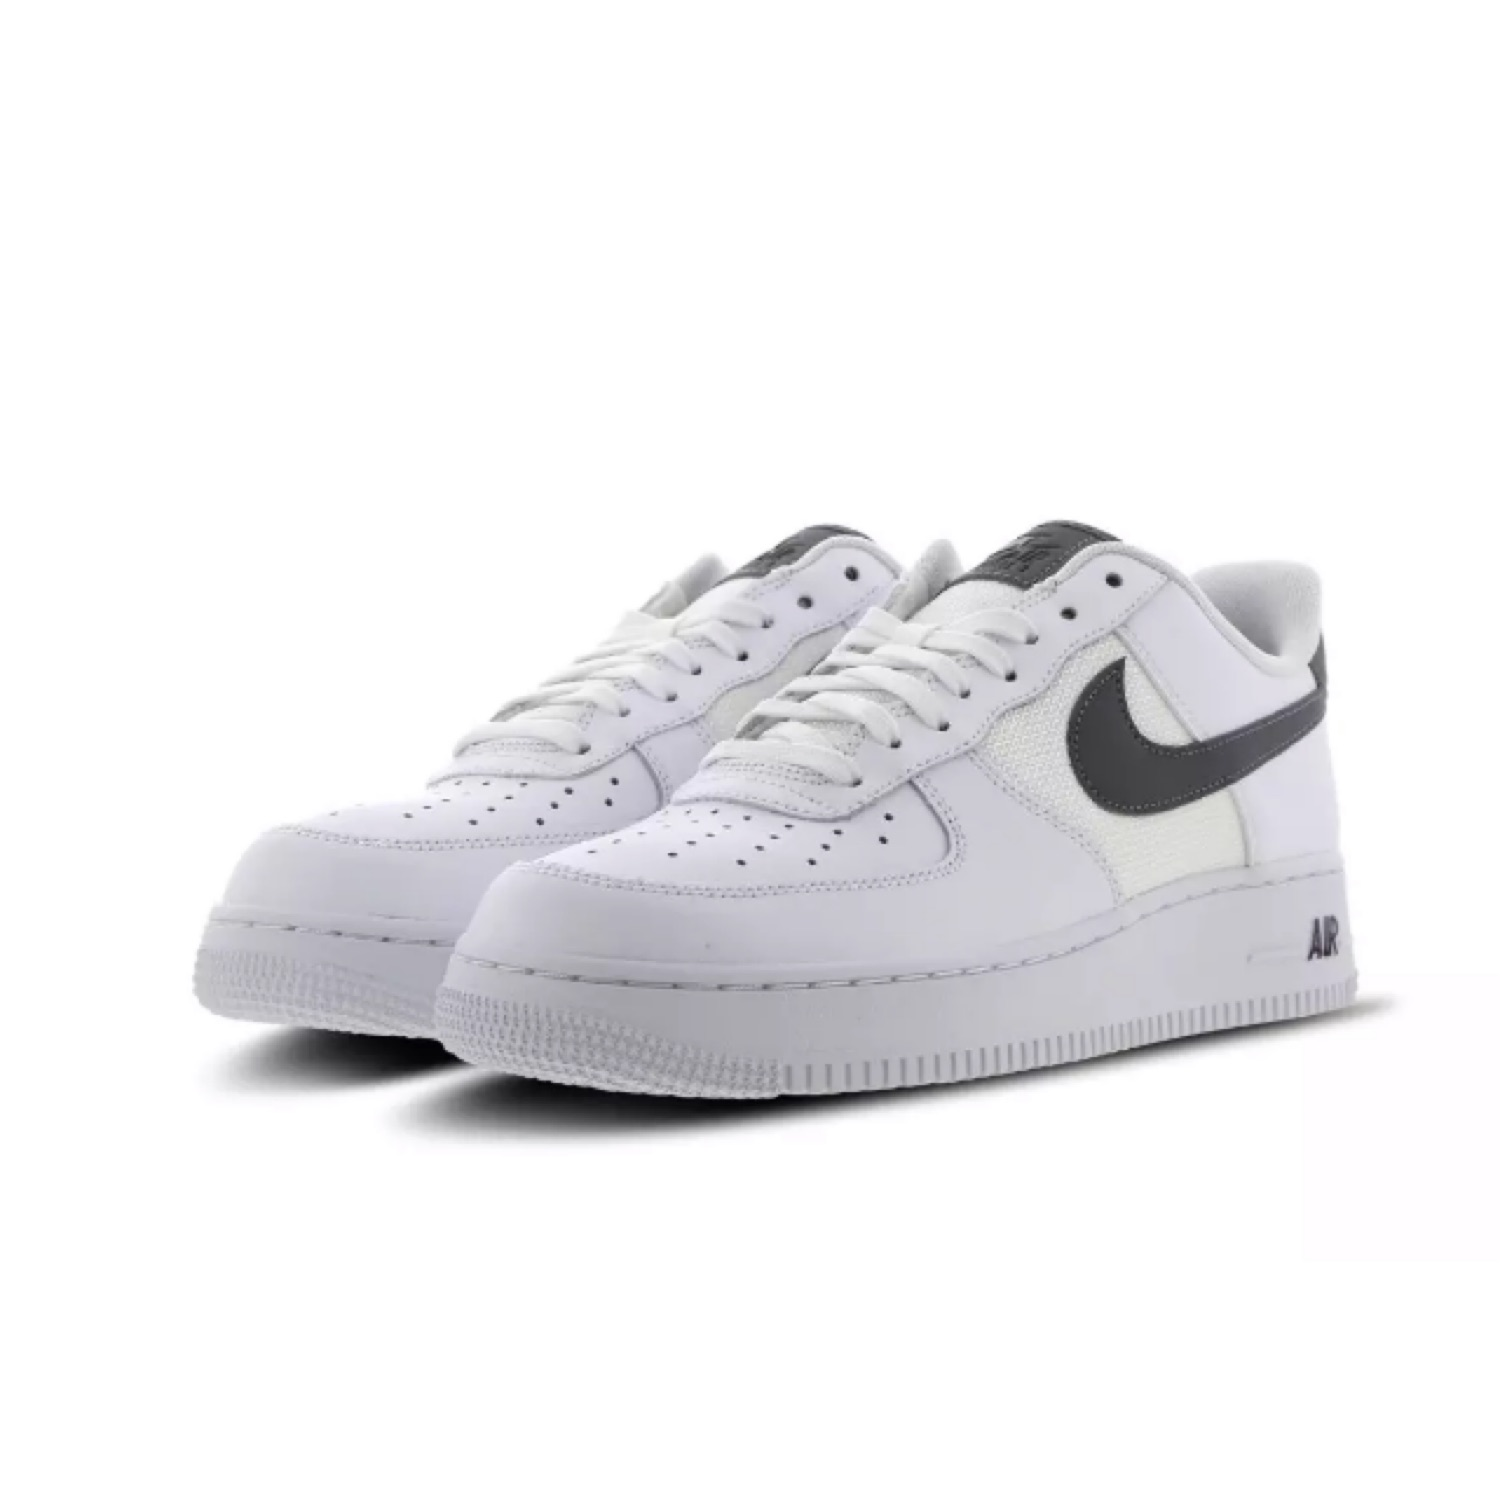 Nike Air Force 1 Low White Cool Grey Maroon